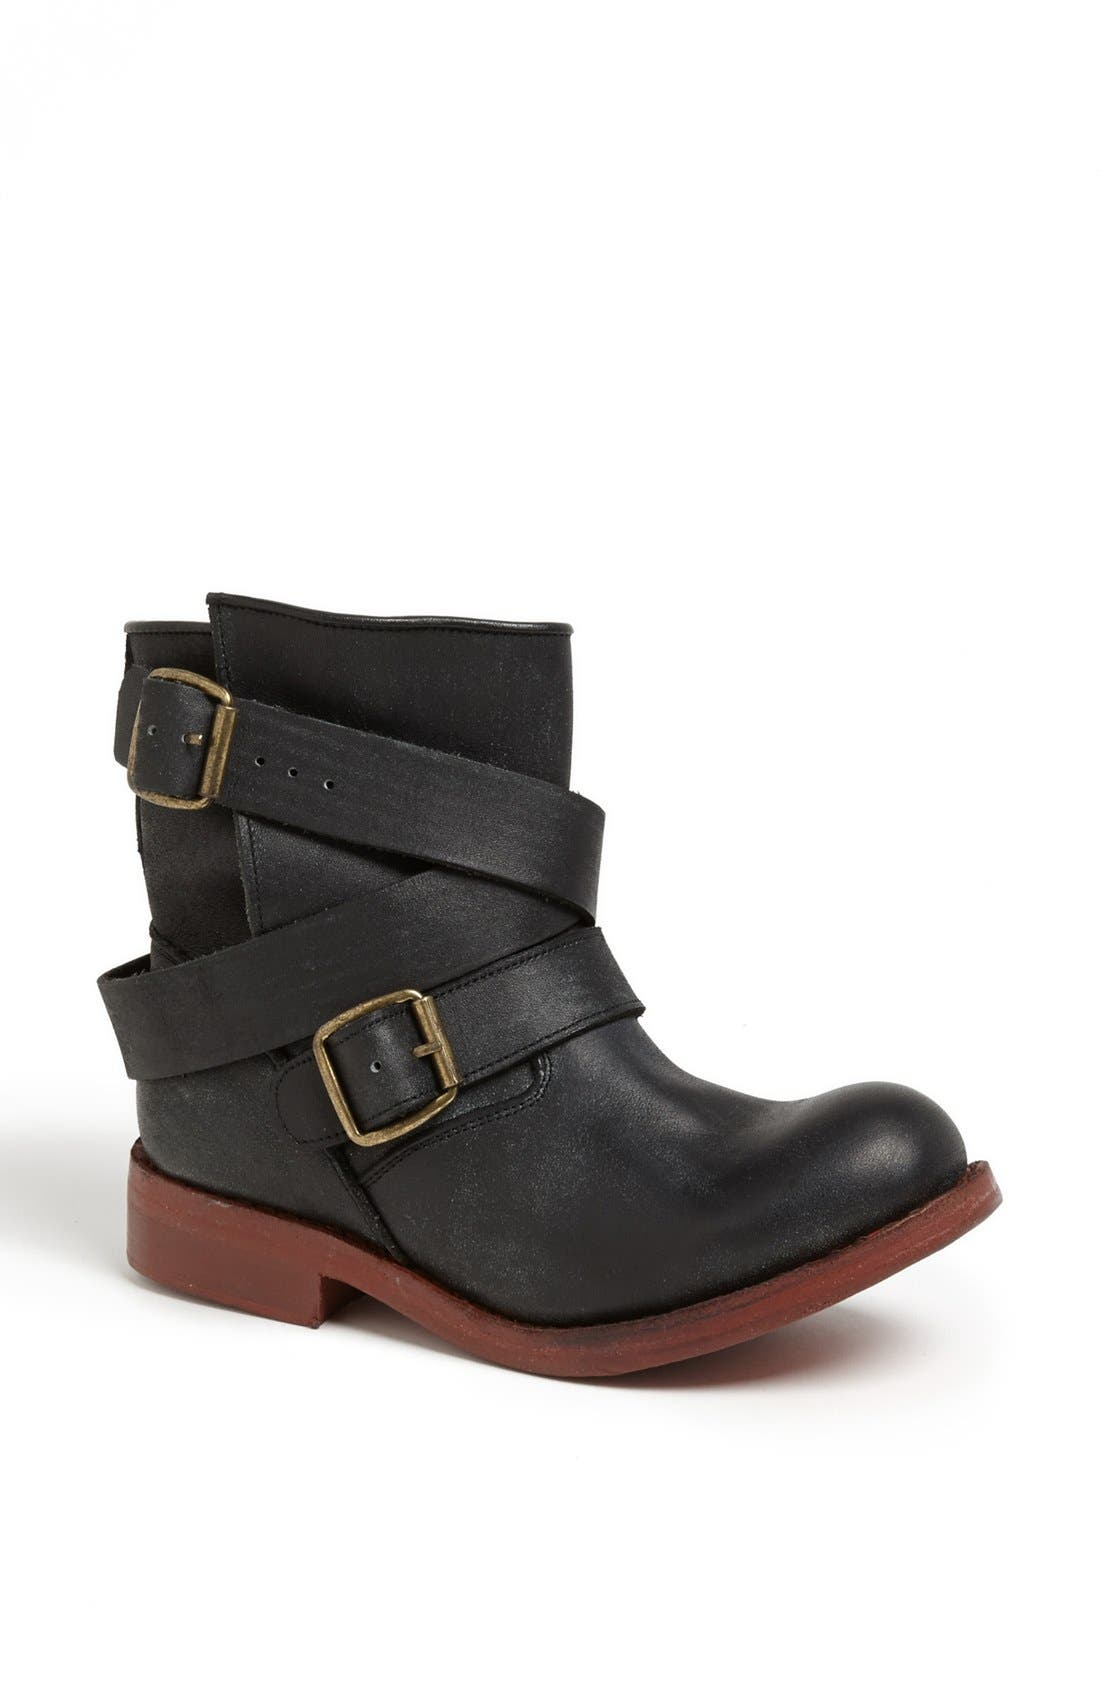 Alternate Image 1 Selected - Jeffrey Campbell 'Argus' Boot